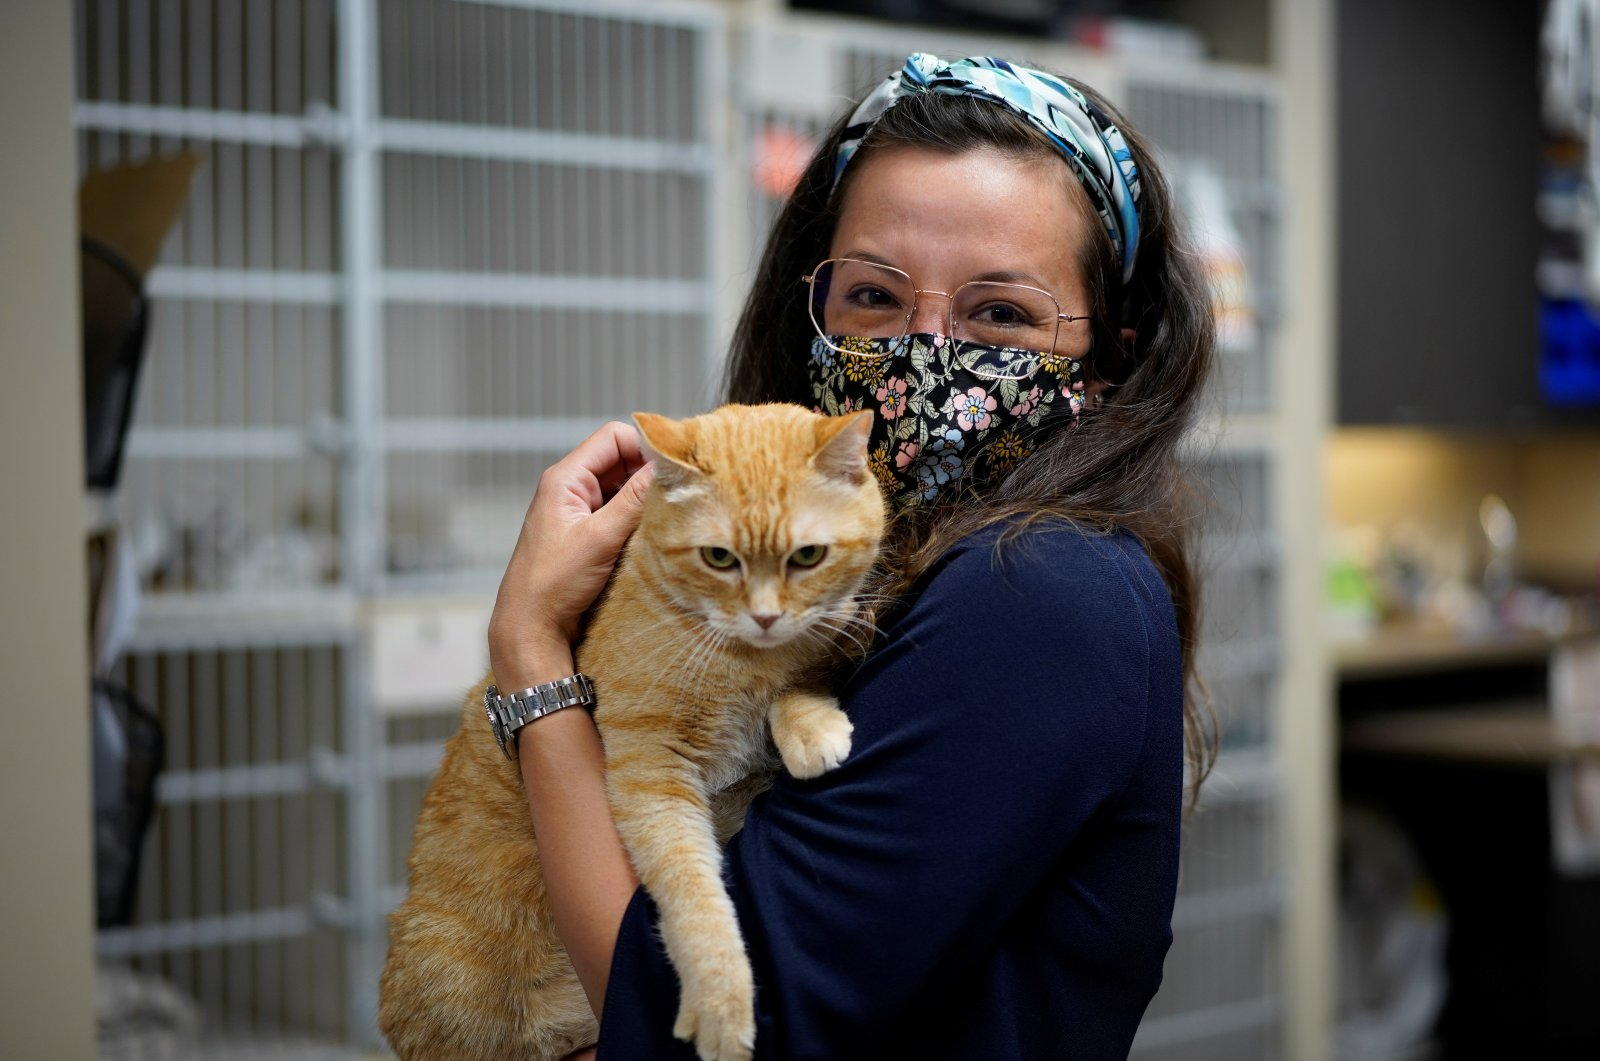 Miche Priest, venture lead of Alta ML, with a cat at the Wild Rose Cat clinic in Calgary, Alberta, Canada, July 14, 2021. (Reuters Photo)